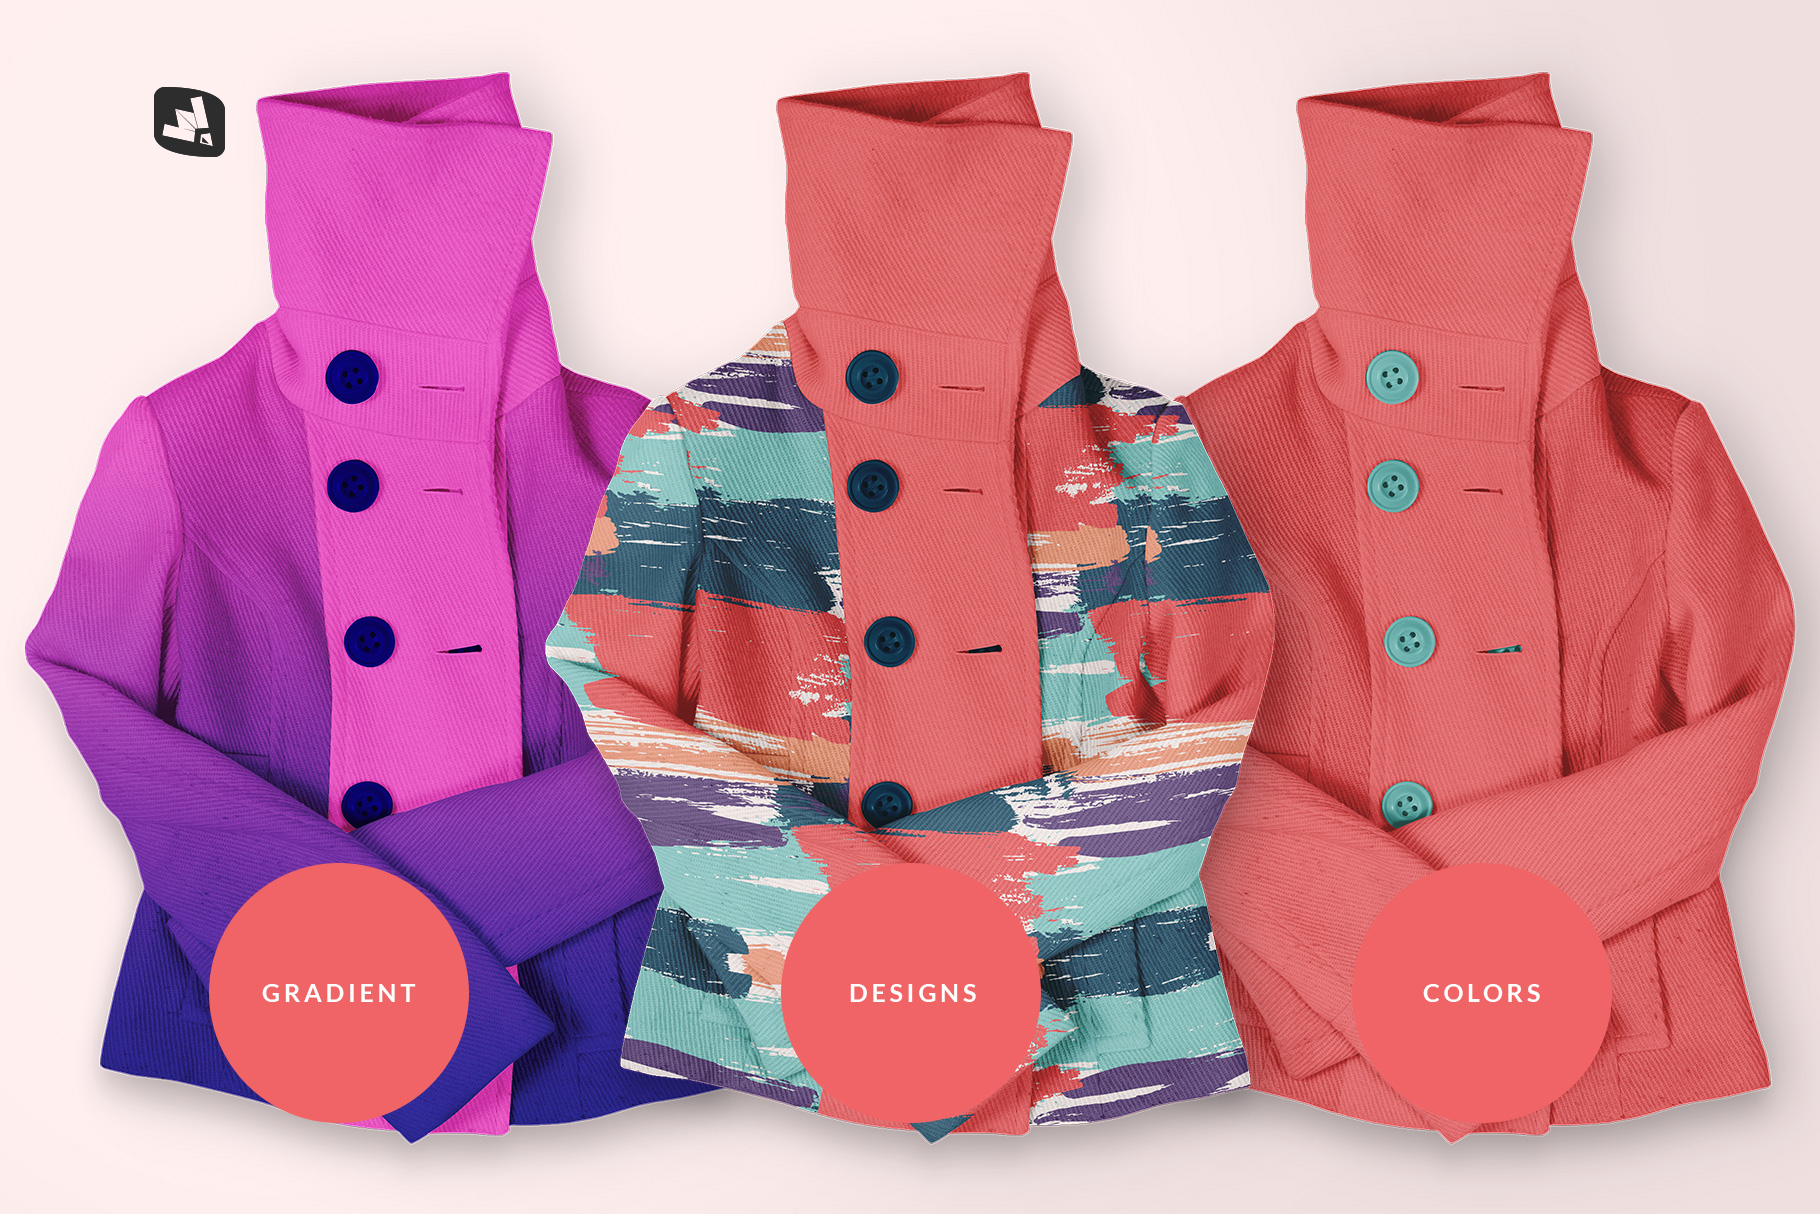 types of the women's high collar jacket mockup